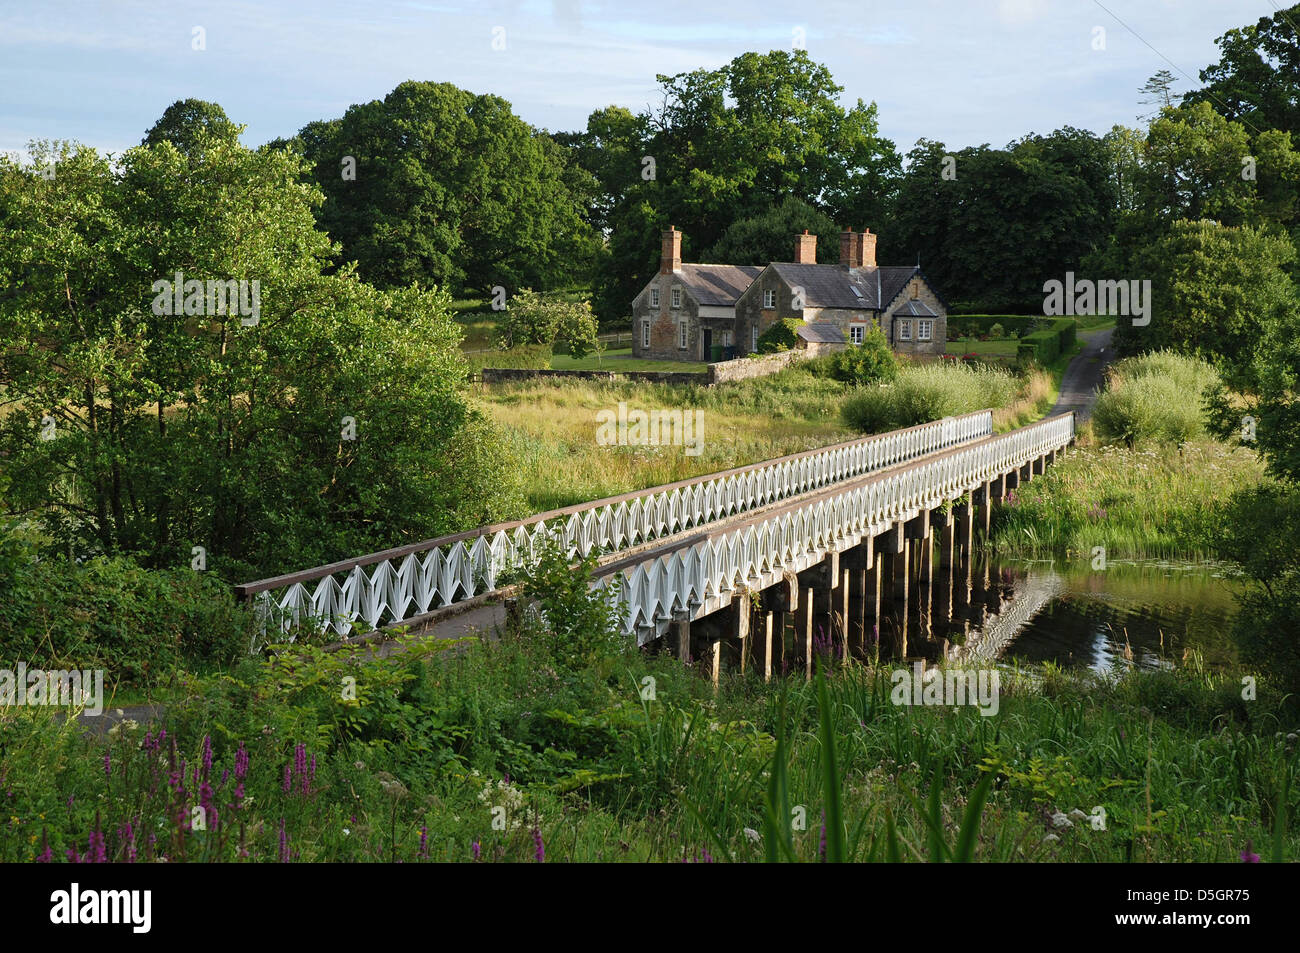 White Bridge, Crom Estate, Upper Lough Erne, County Fermanagh, Northern Ireland - Stock Image